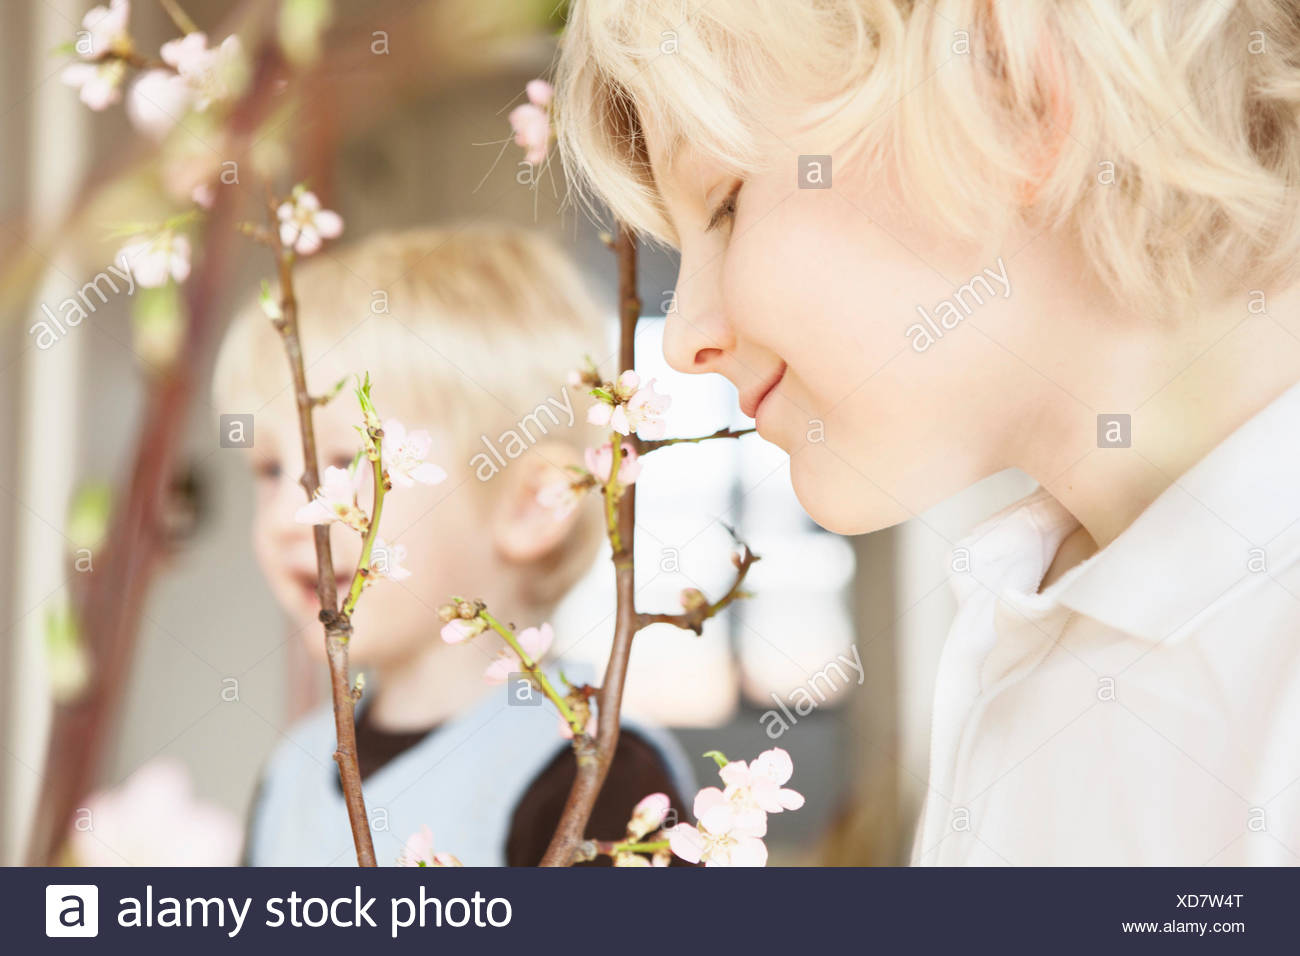 Close up of two brothers and blossom twigs in sitting room - Stock Image